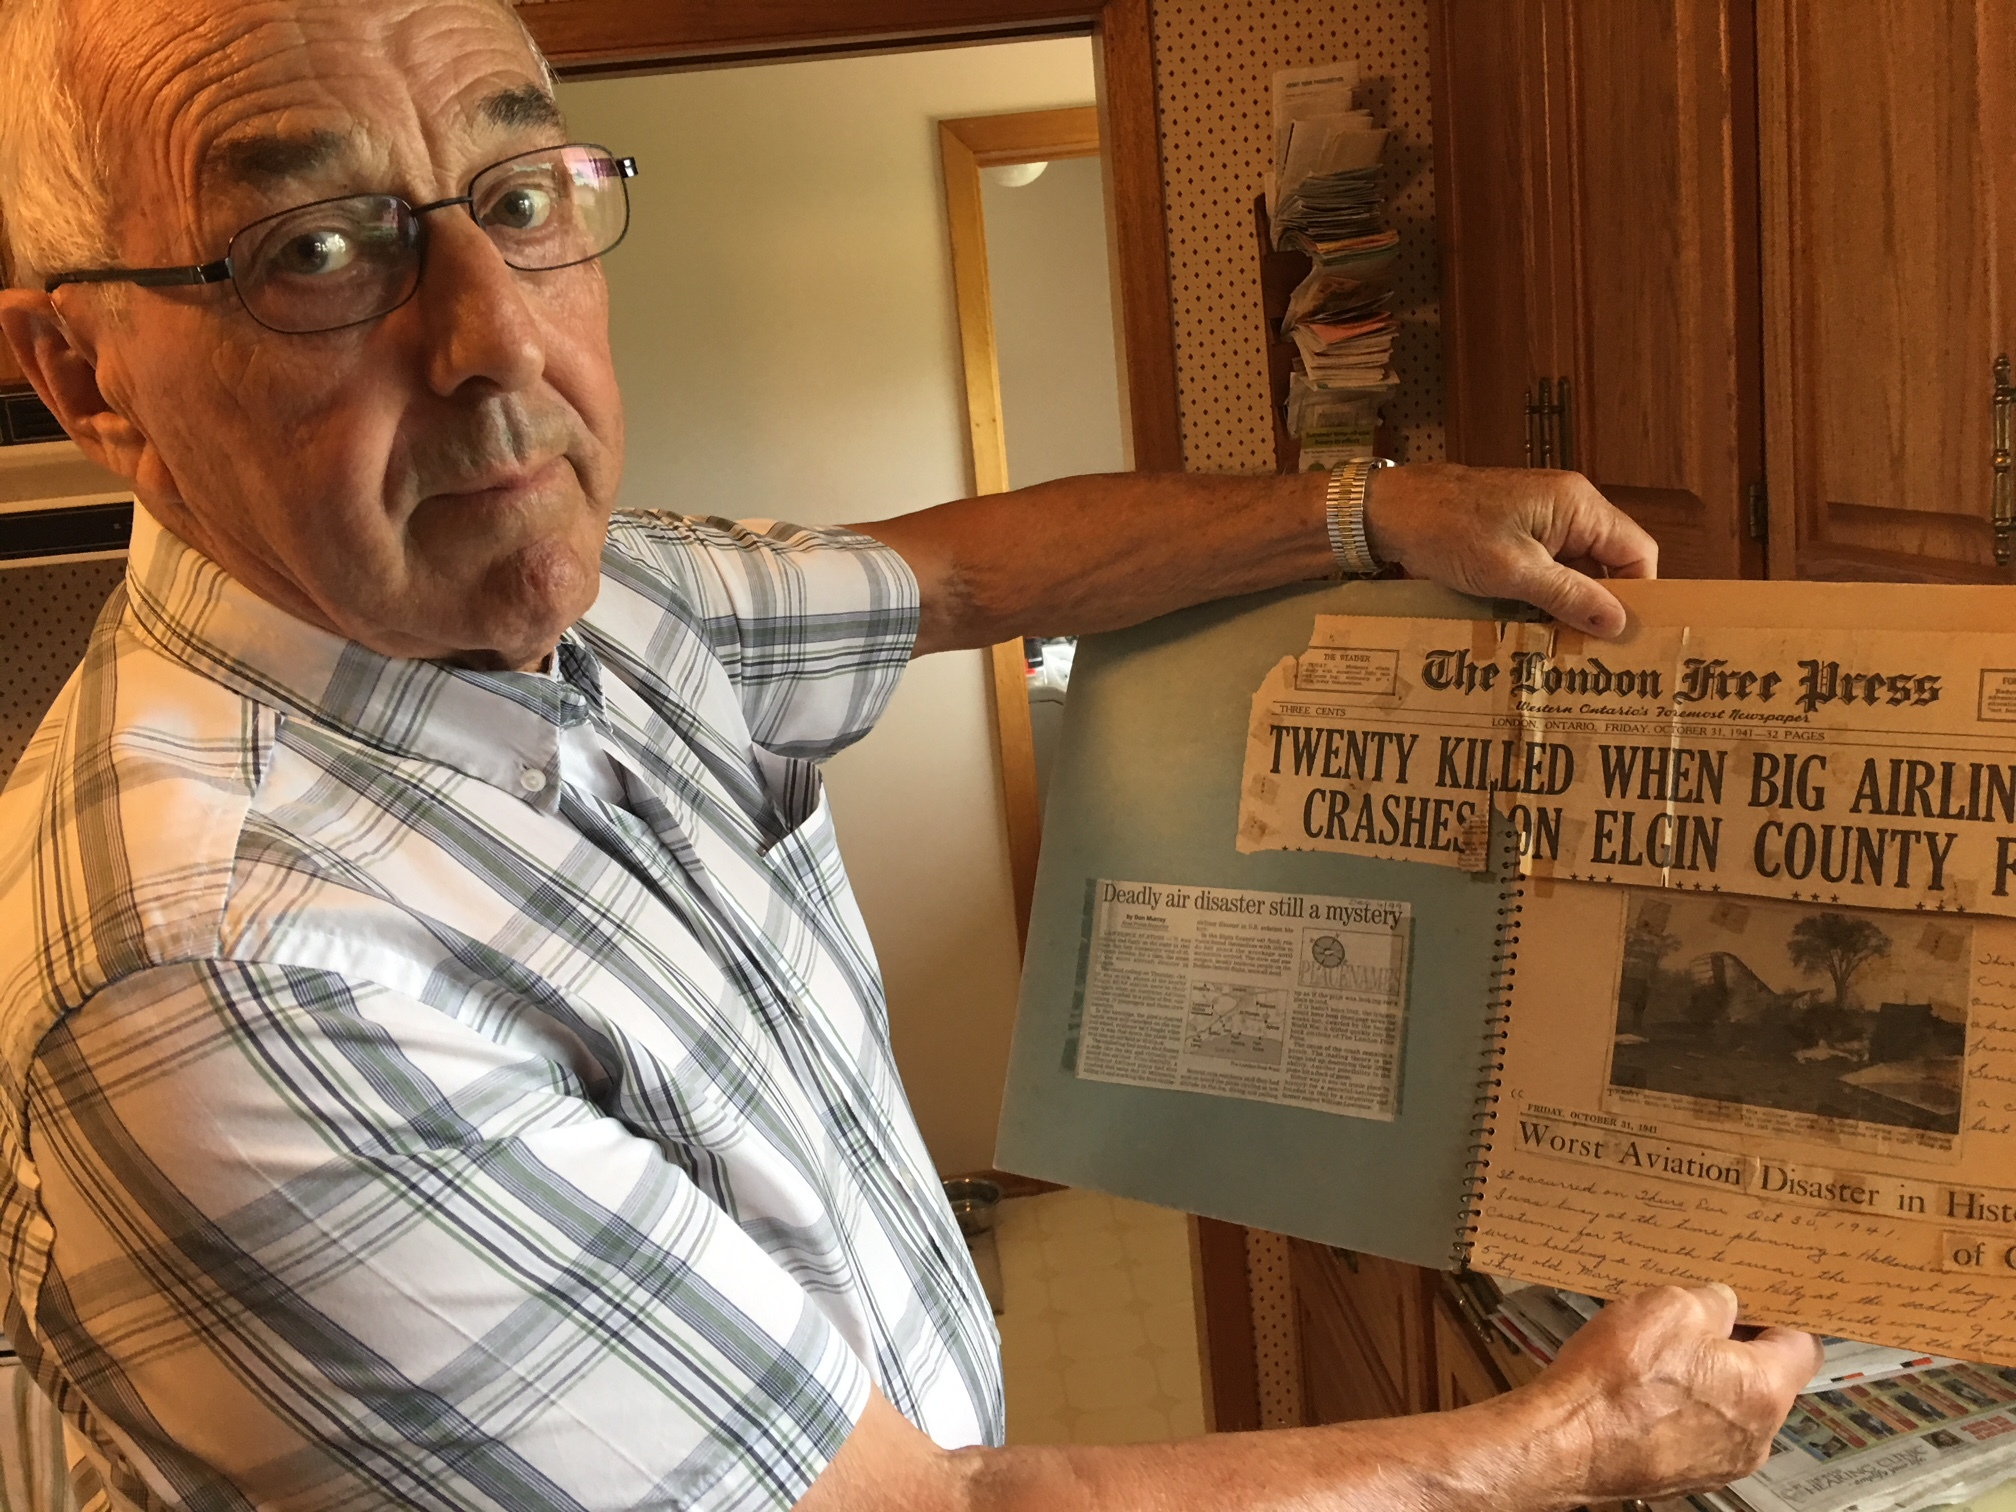 Ken Howe was five years old when the plane came down on his family's farm on the night of Oct. 30, 1941. His family's house became a makeshift operations centre for crash investigators and journalists in the days that followed. (Andrew Lupton/CBC)